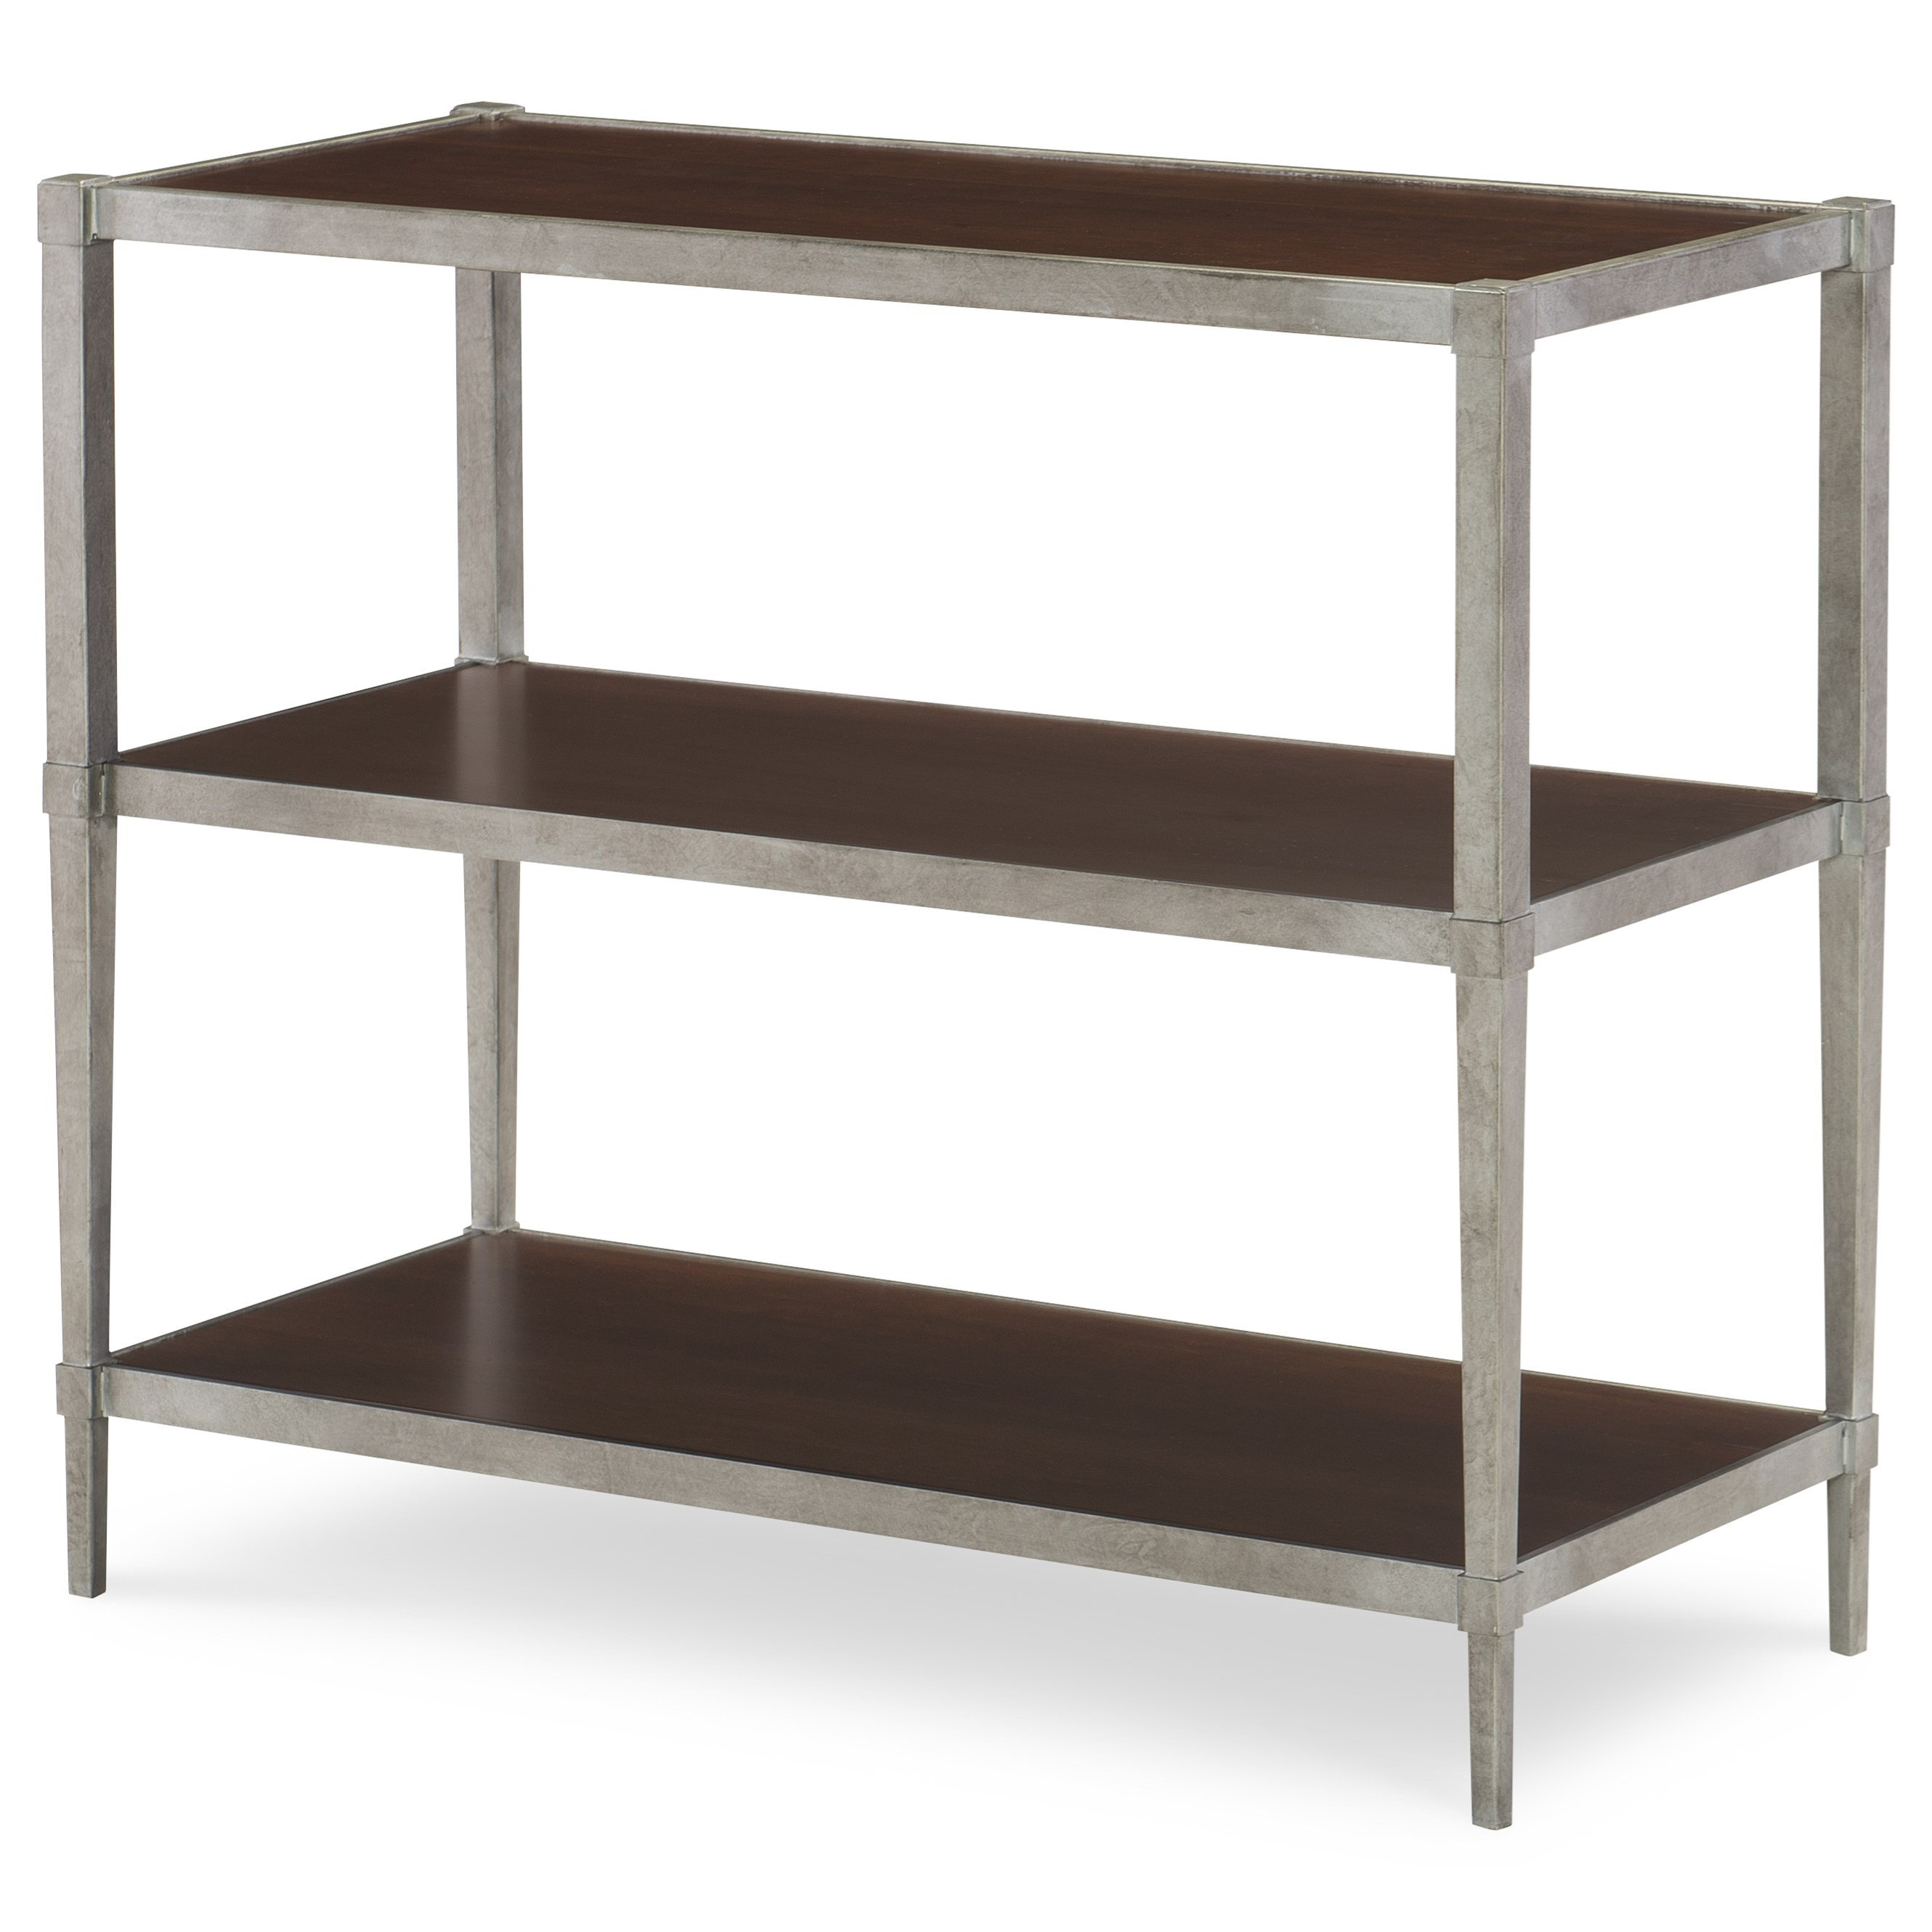 Rachael Ray Home by Legacy Classic Upstate Book Table - Item Number: 6040-407